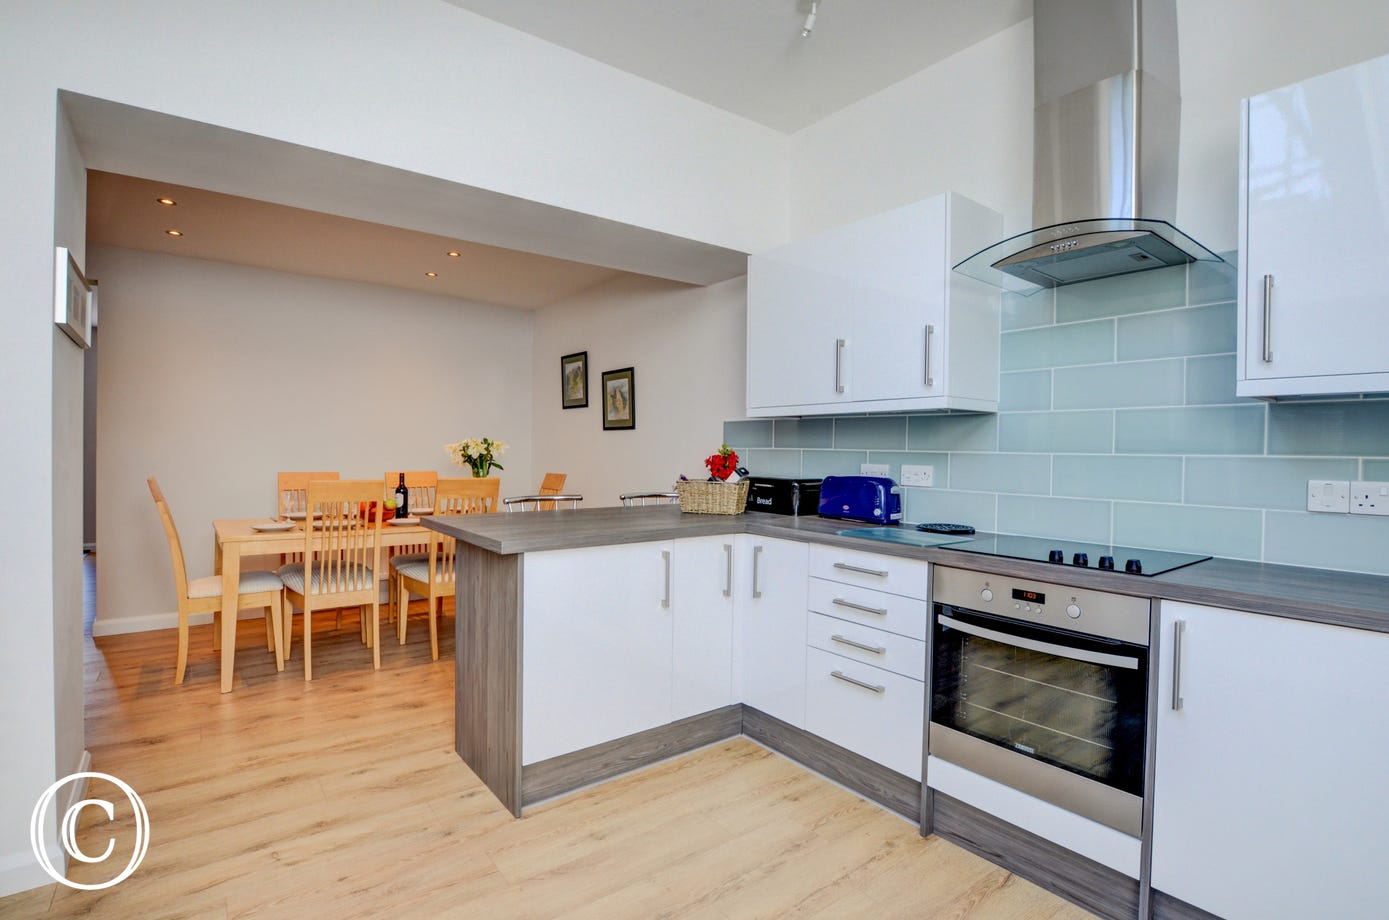 With an open plan kitchen/diner, you can still interact with your friends and family whilst preparing your meals